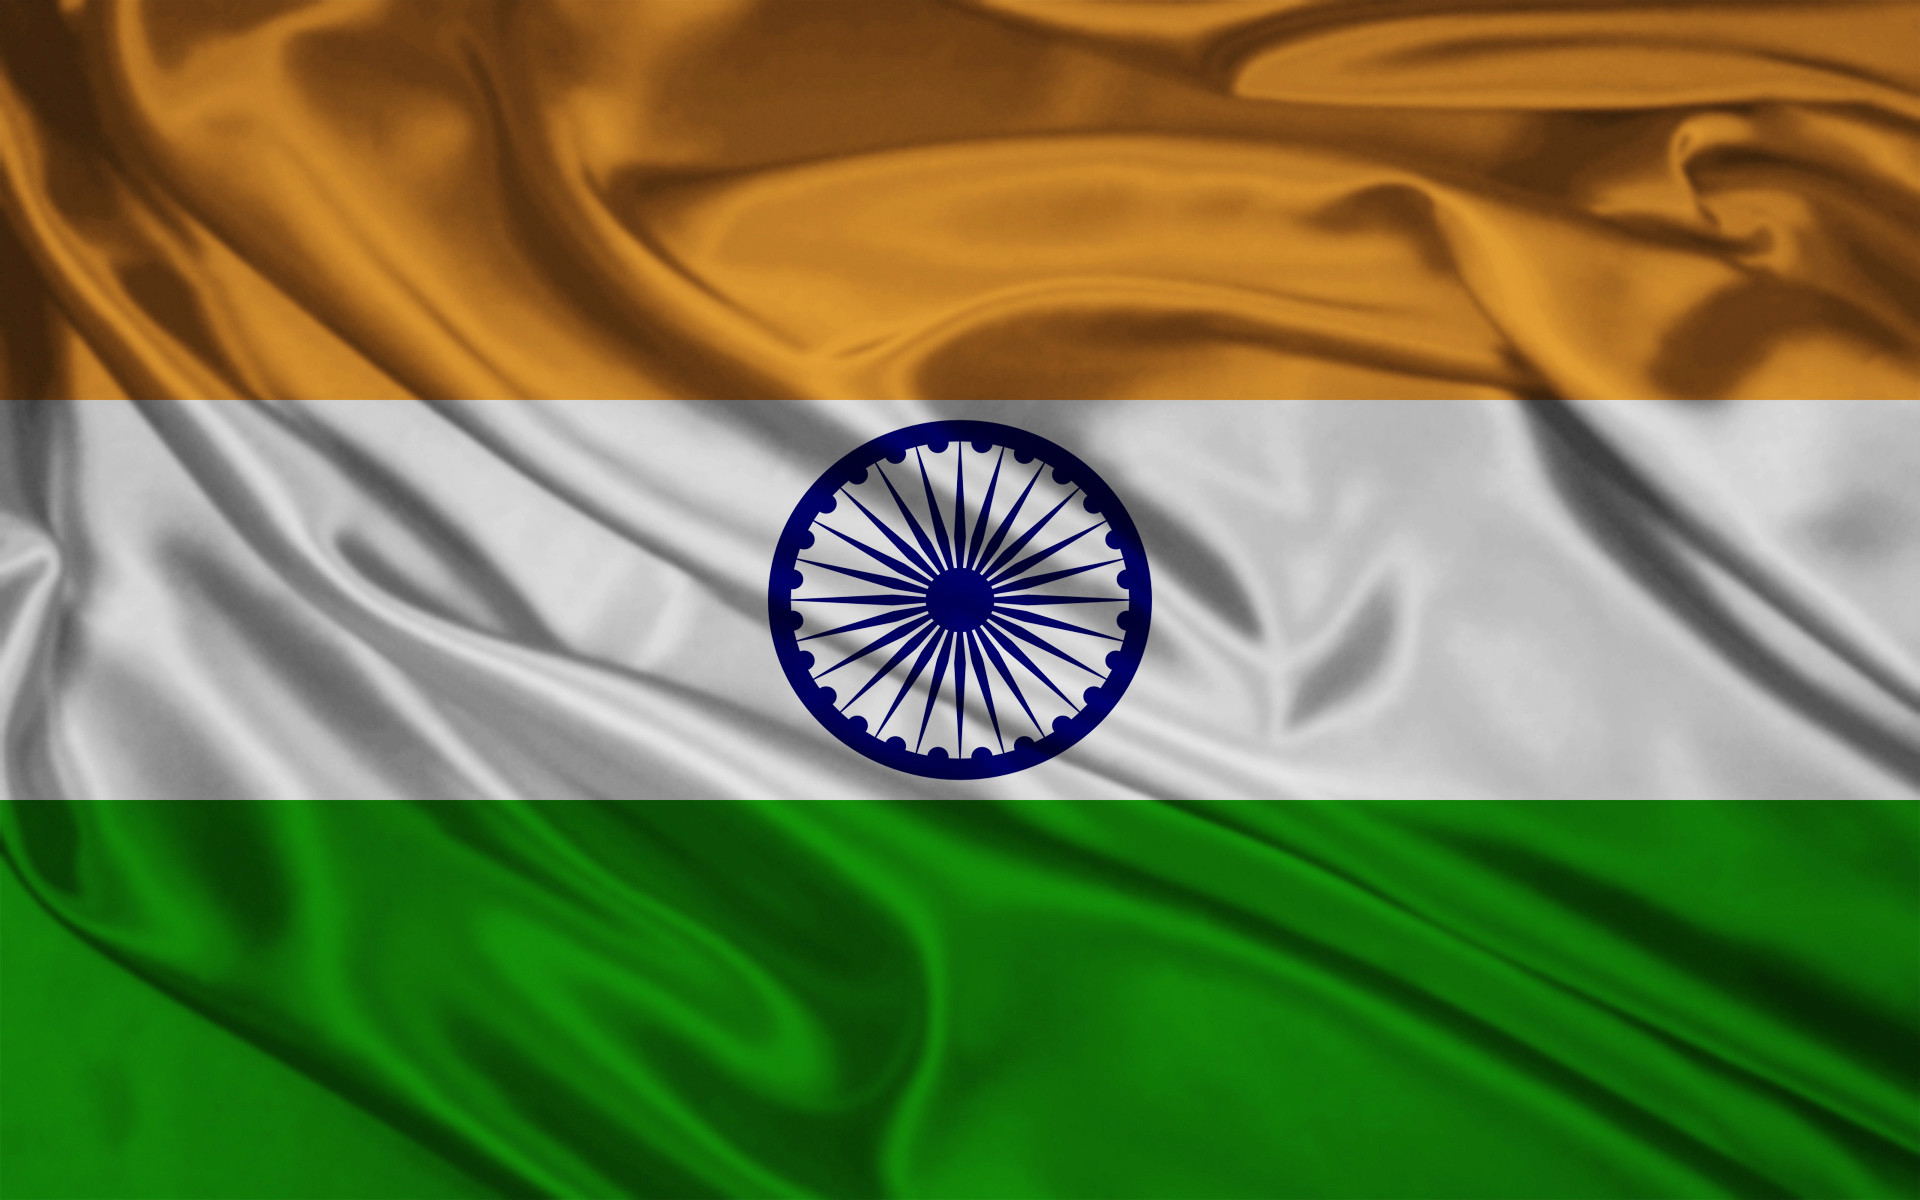 Indian flag wallpaper 2018 78 images - Indian flag 4k wallpaper ...